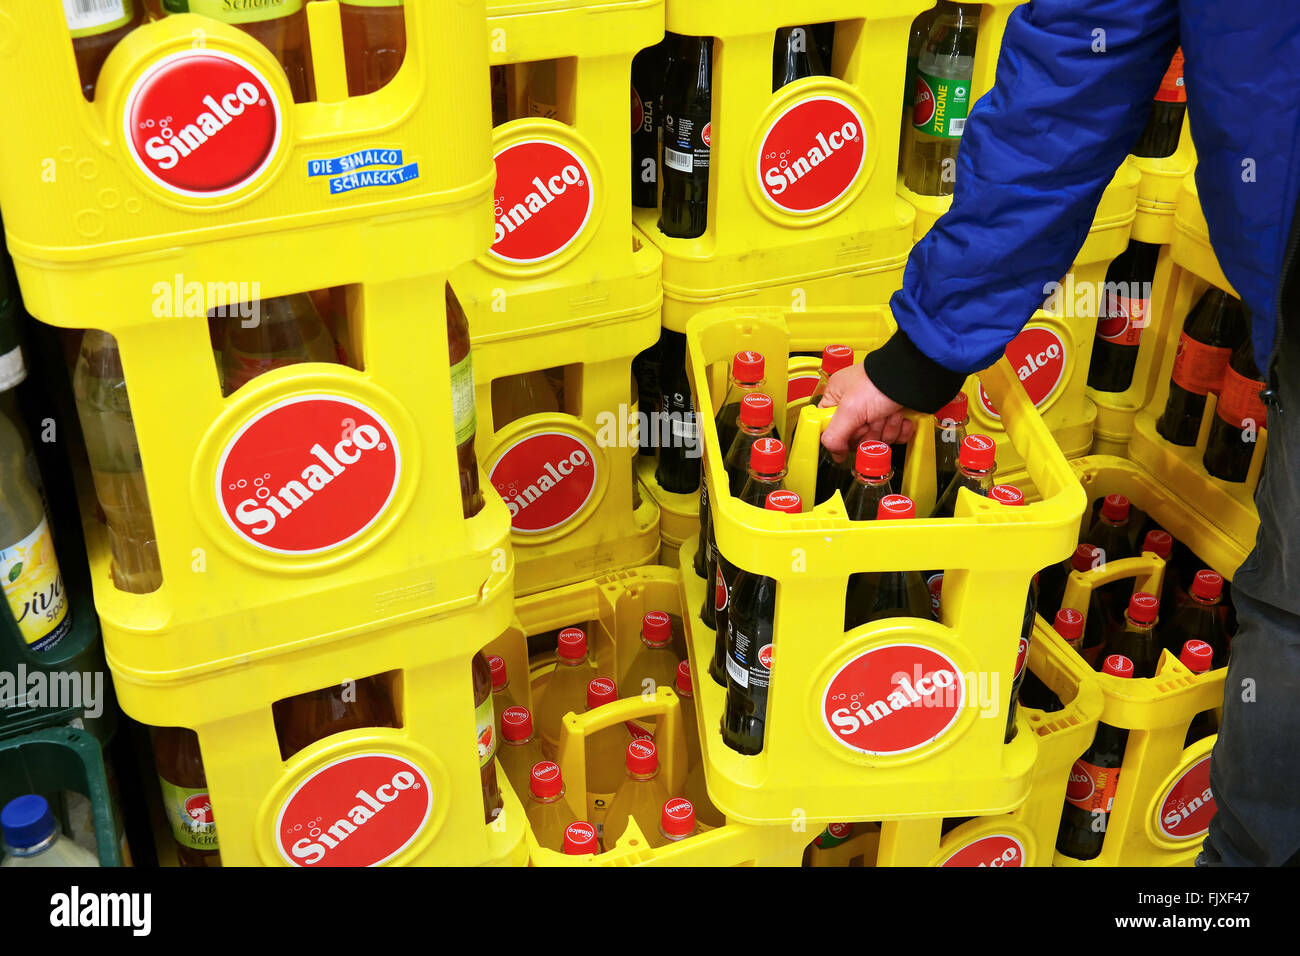 Sinalco is a popular brand of non-alcoholic drinks - Stock Image